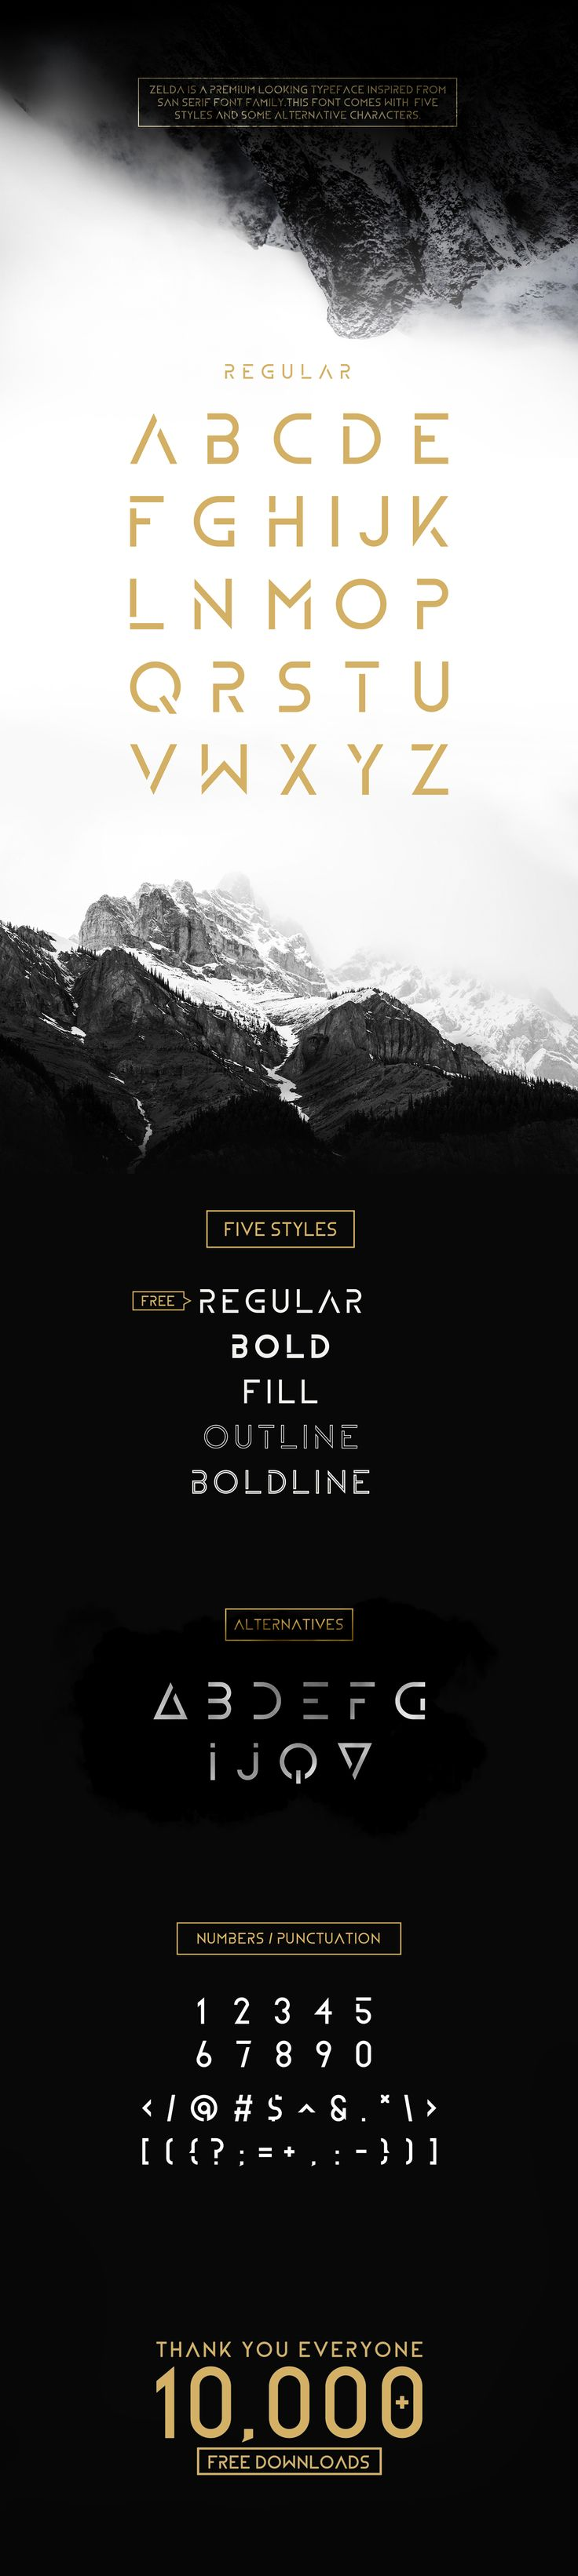 ZELDA IS AN MODERN AND MINIMAL TYPEFACE INSPIRED FROM SANS SERIF FONT FAMILY.THIS TYPEFACE COMES WITH 5 DIFFERENT AND STYLES AND MANY ALTERNATIVES INCLUDING PERSONAL AND COMMERCIAL LICENCES. HOPE YOU LIKE IT :)